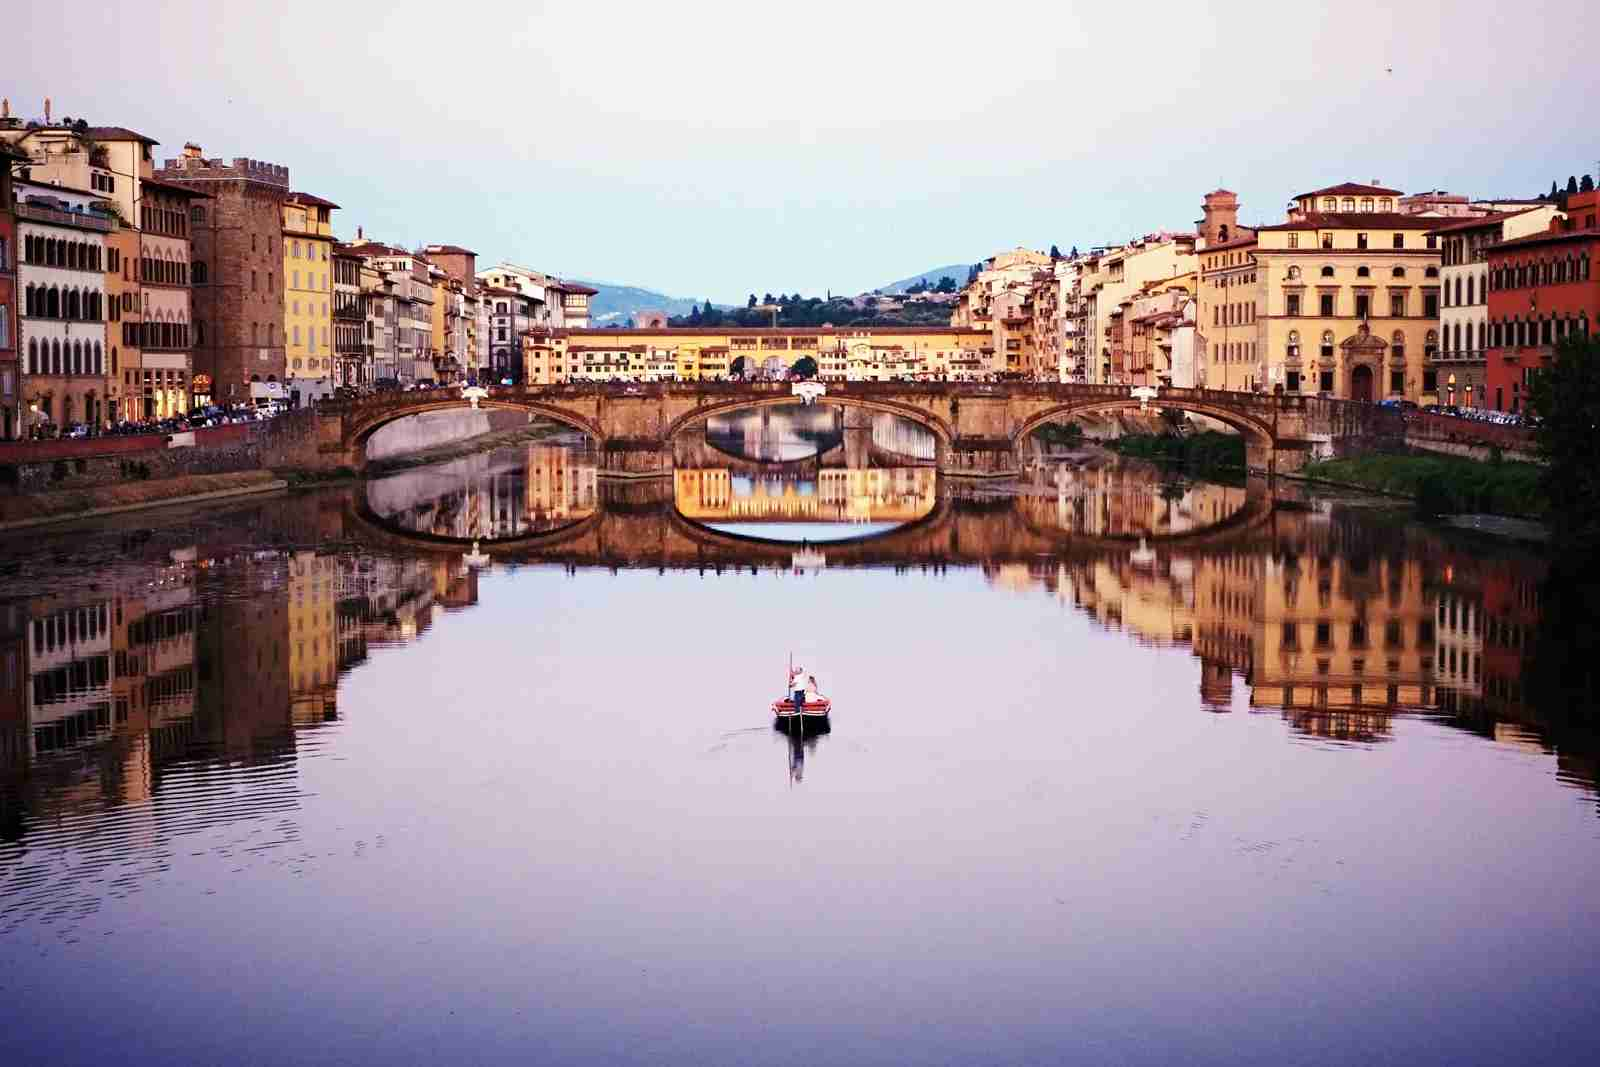 The Arno River. (Photo by Baldemar / Getty Images)